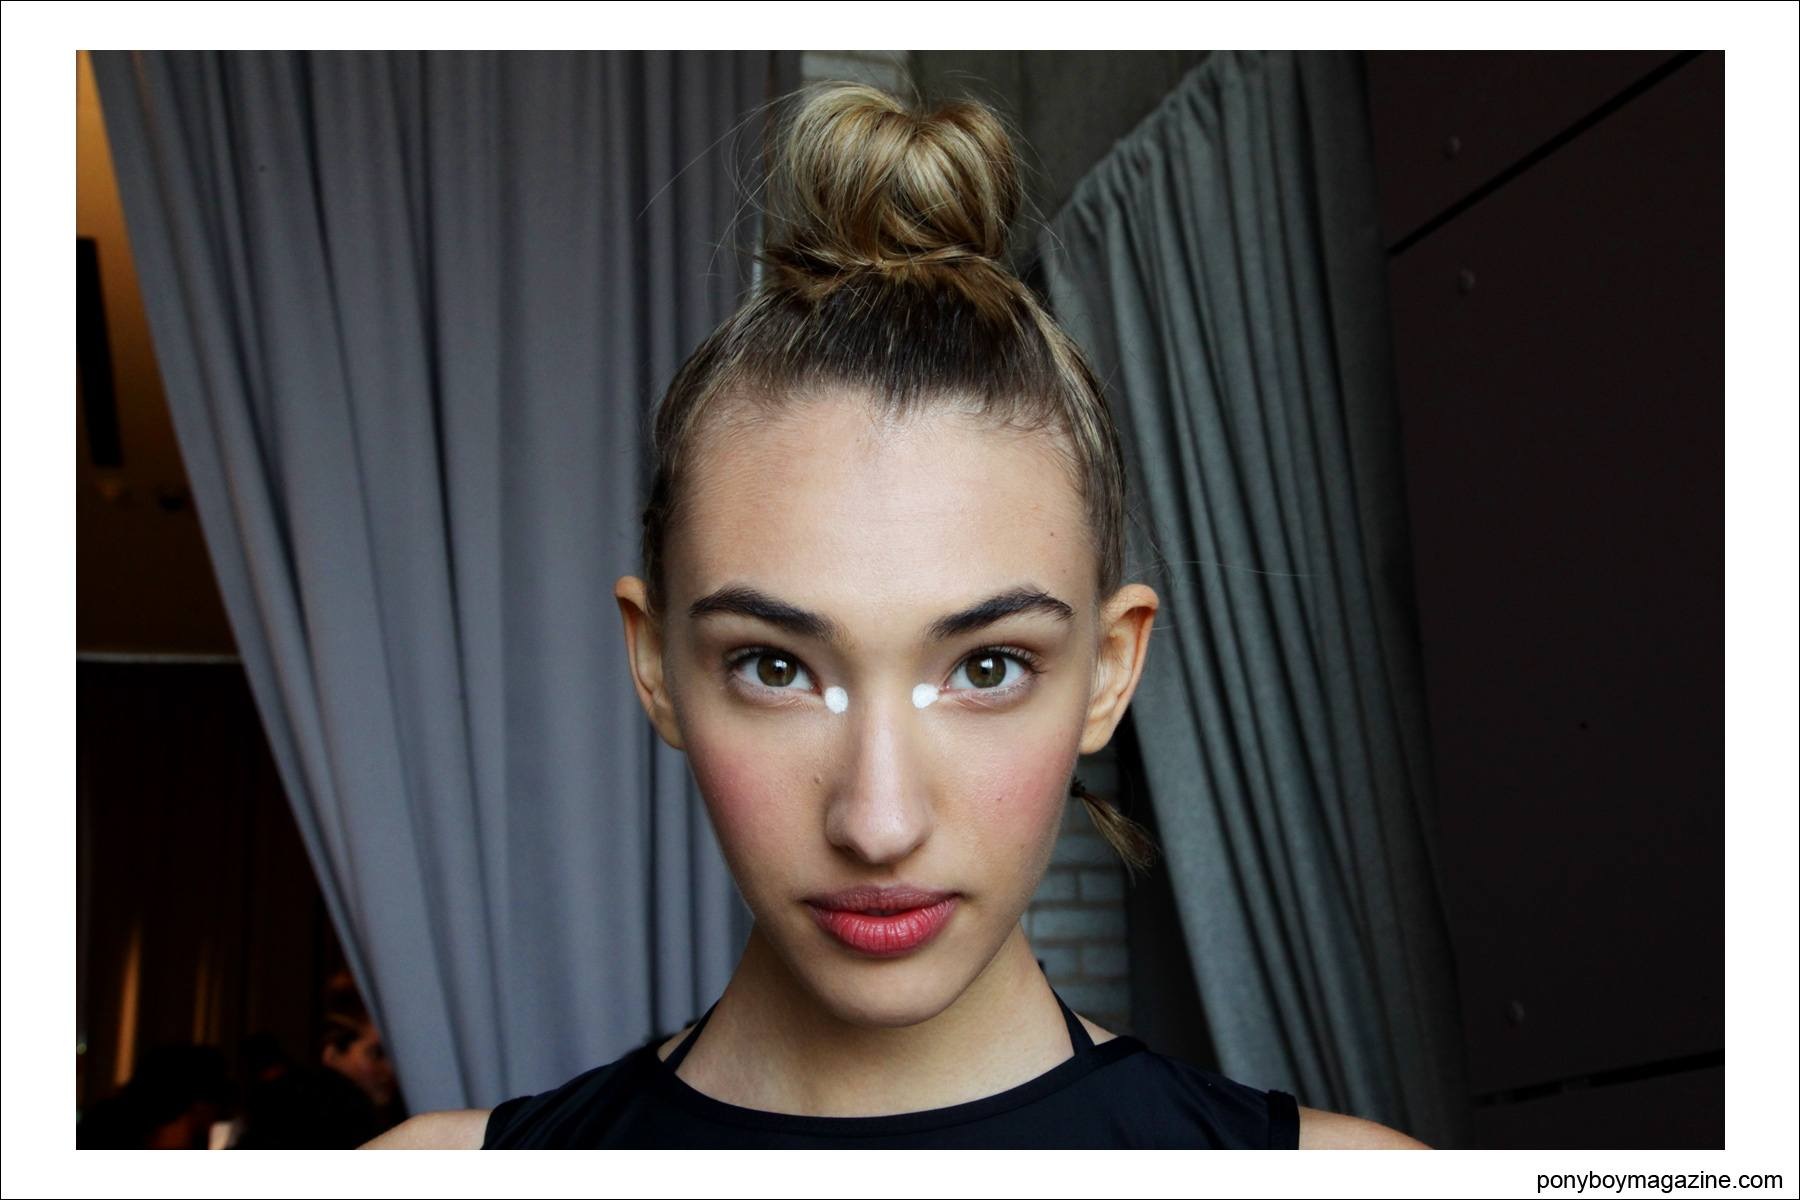 A model in a topknot hairdo, photographed backstage at The Standard in New York, at the Chromat S/S15 collection. Photo by Alexander Thompson for Ponyboy Magazine.